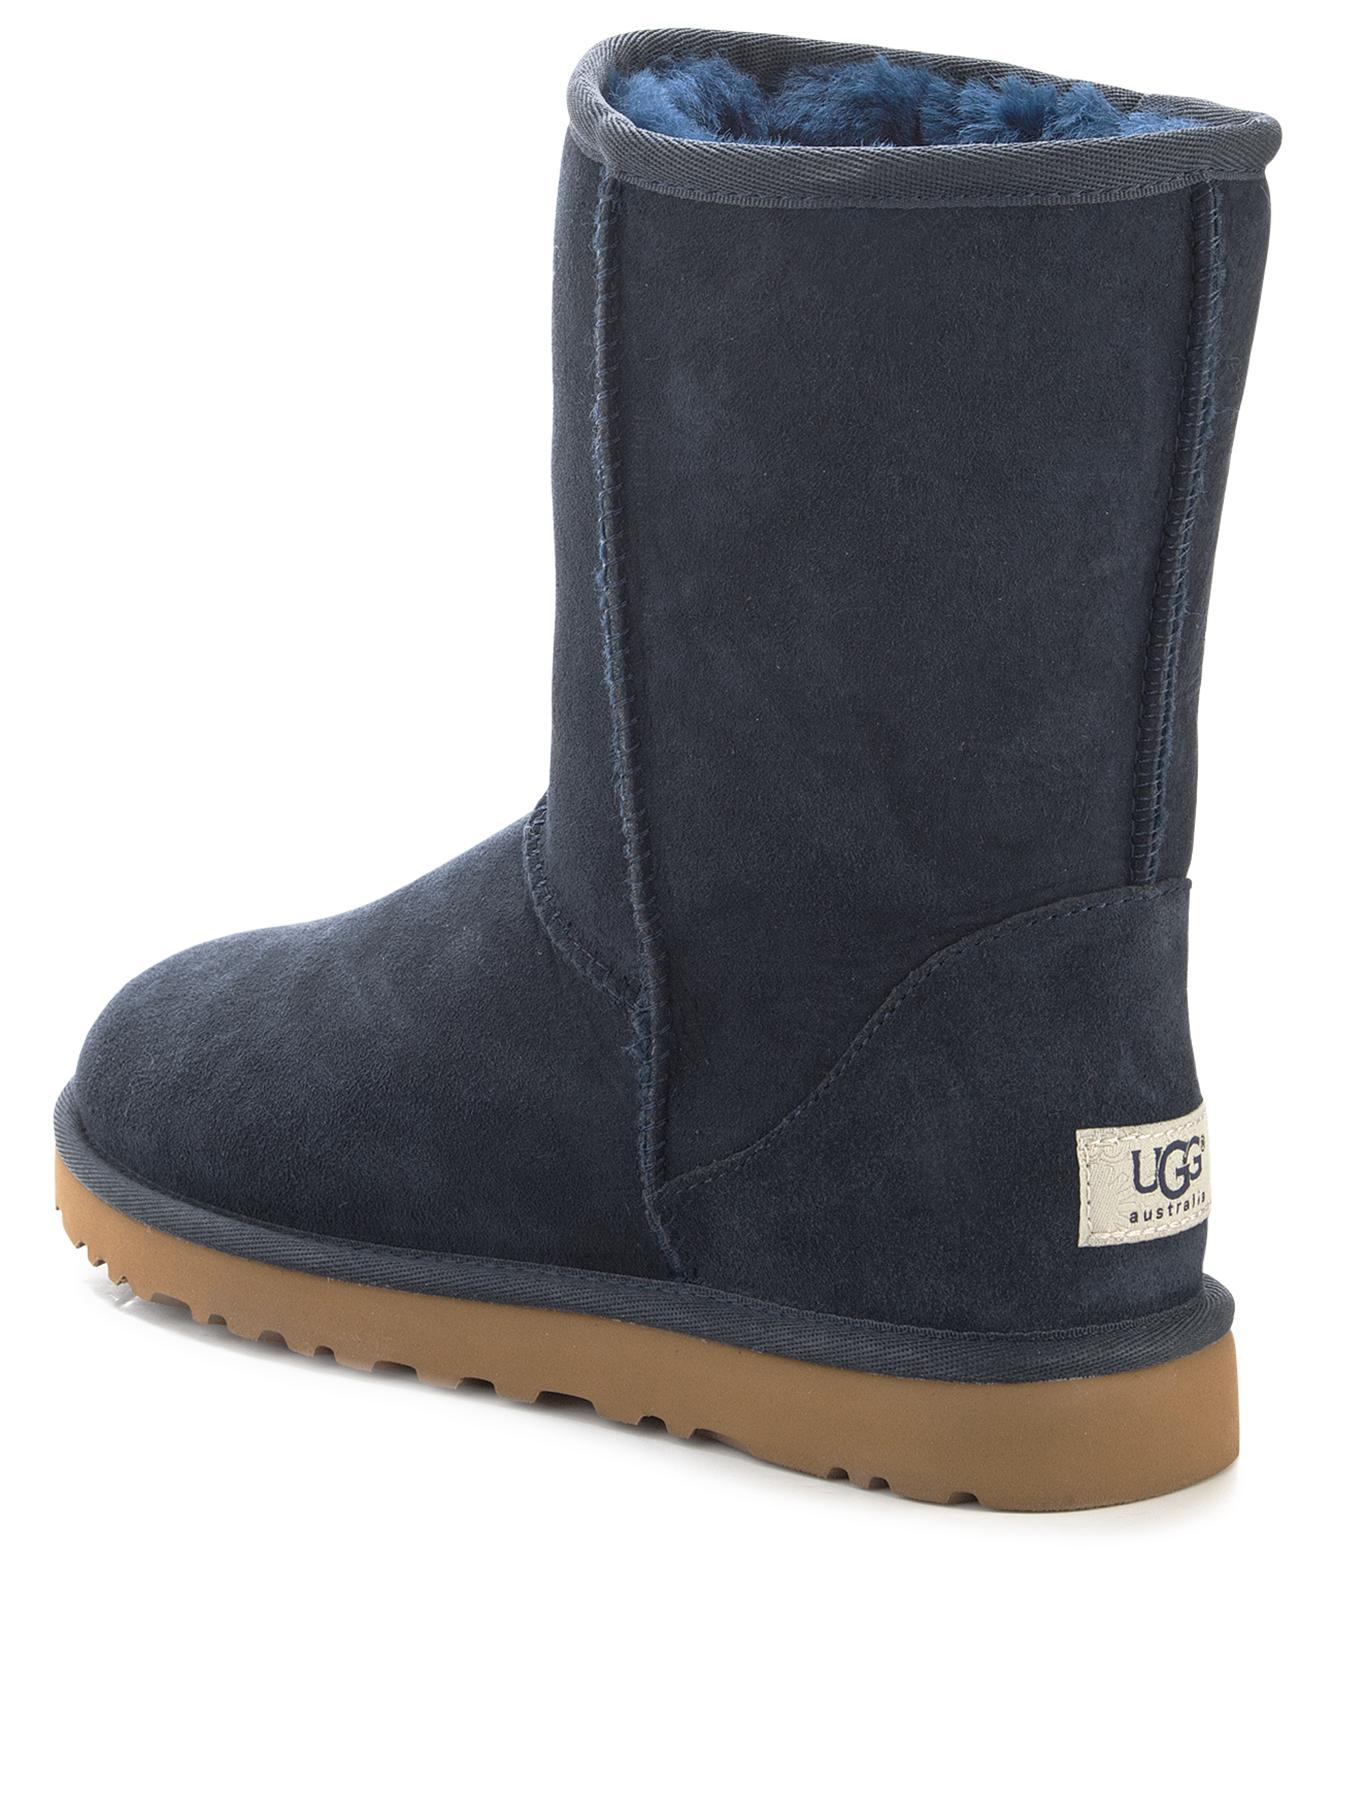 ugg classic short boots navy blue